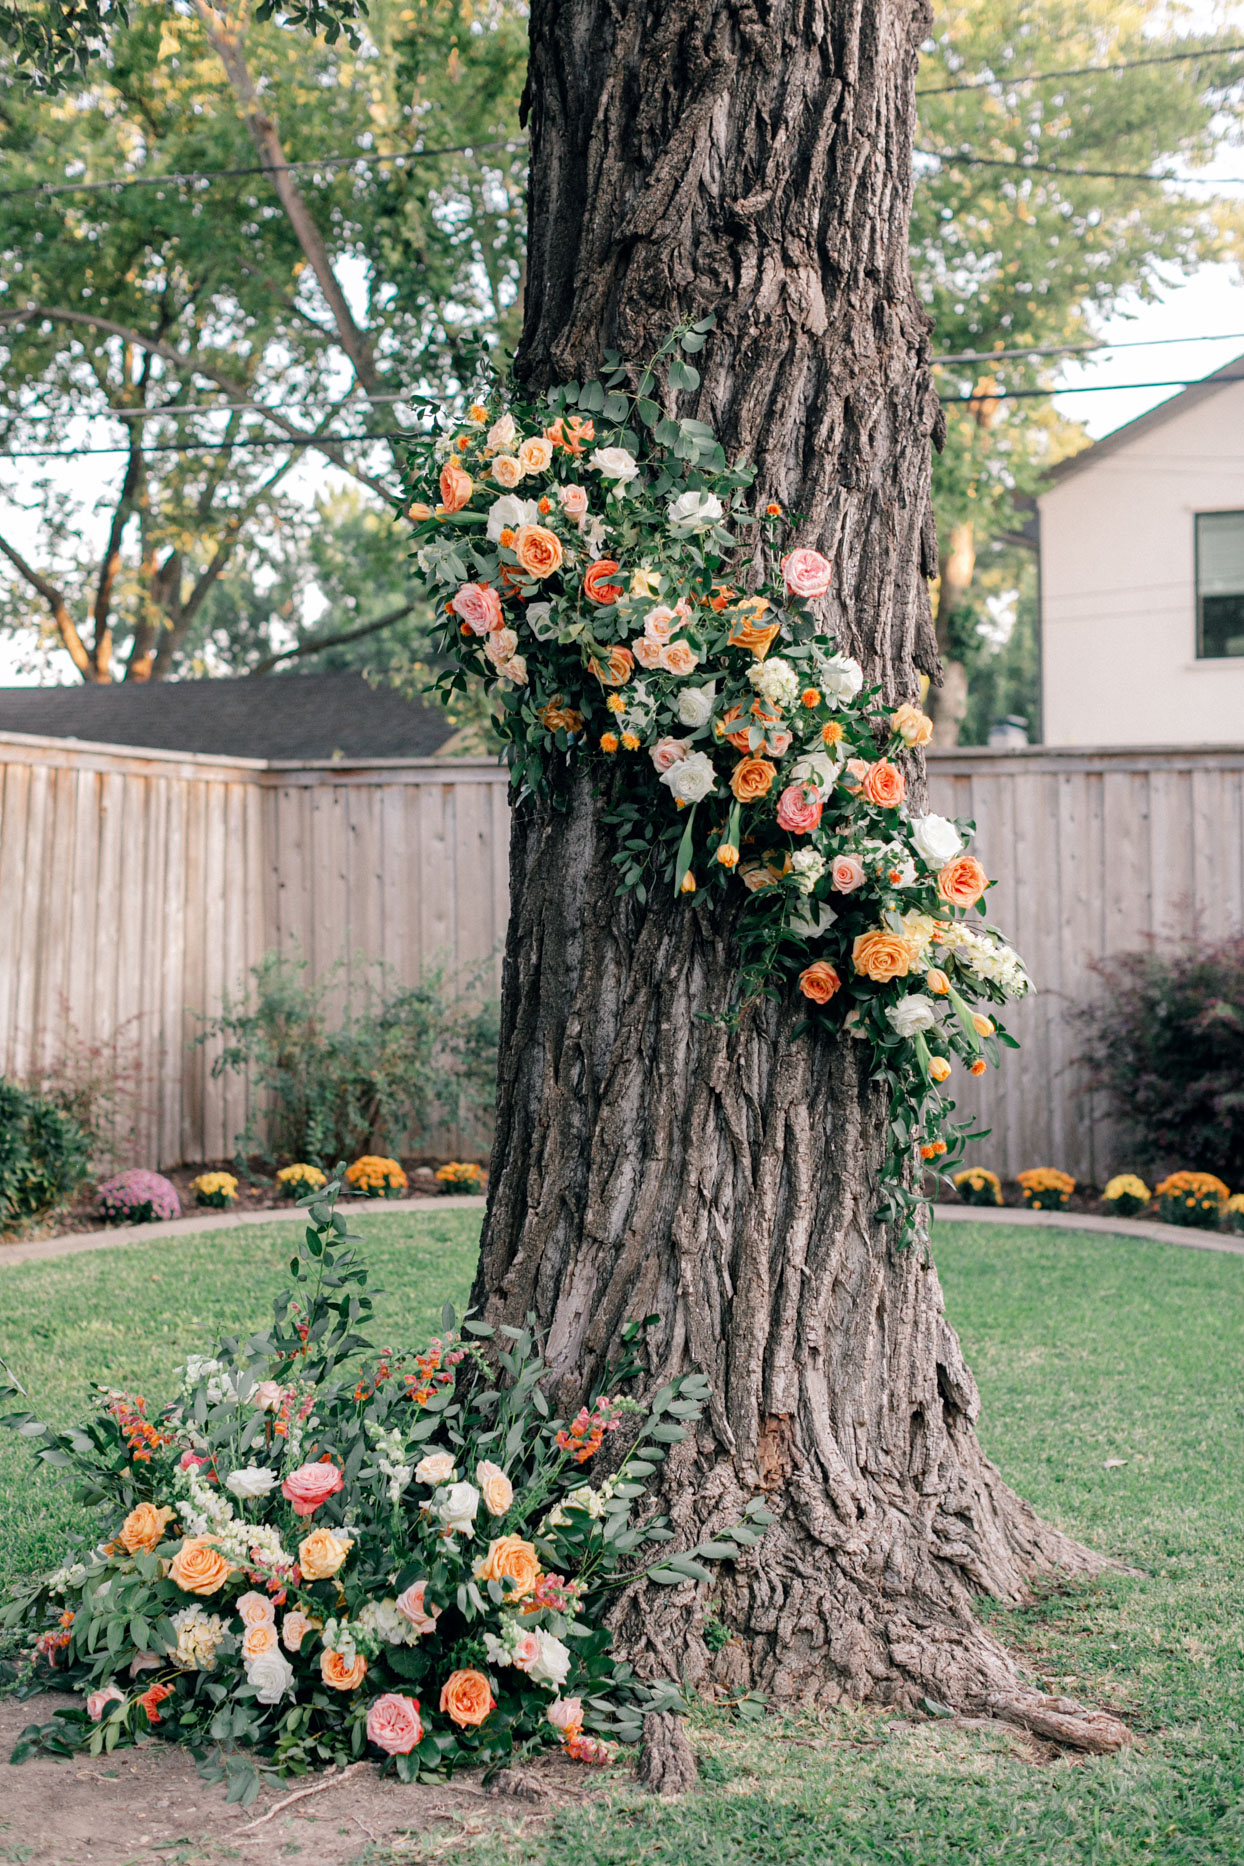 oak tree in backyard with pink, orange, and yellow floral decorations